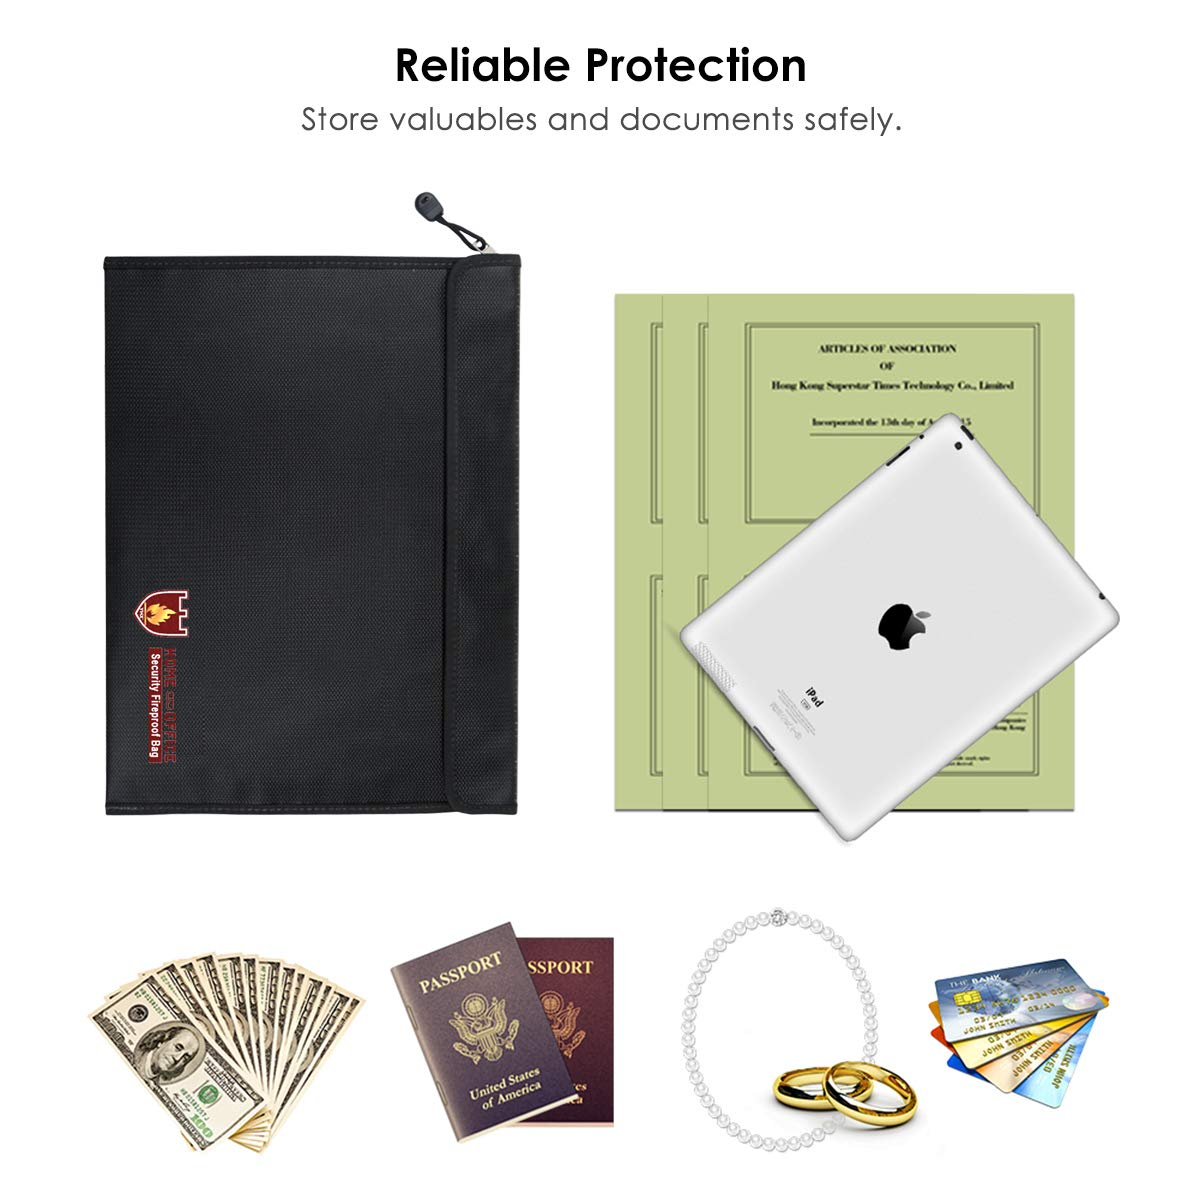 Yunnyp Paper File Bag,Fireproof Money Safe Document Bag Fire /& Water Resistant Document Holder Fireproof Safe Storage for Files Passport and Valuables Zipper Closure